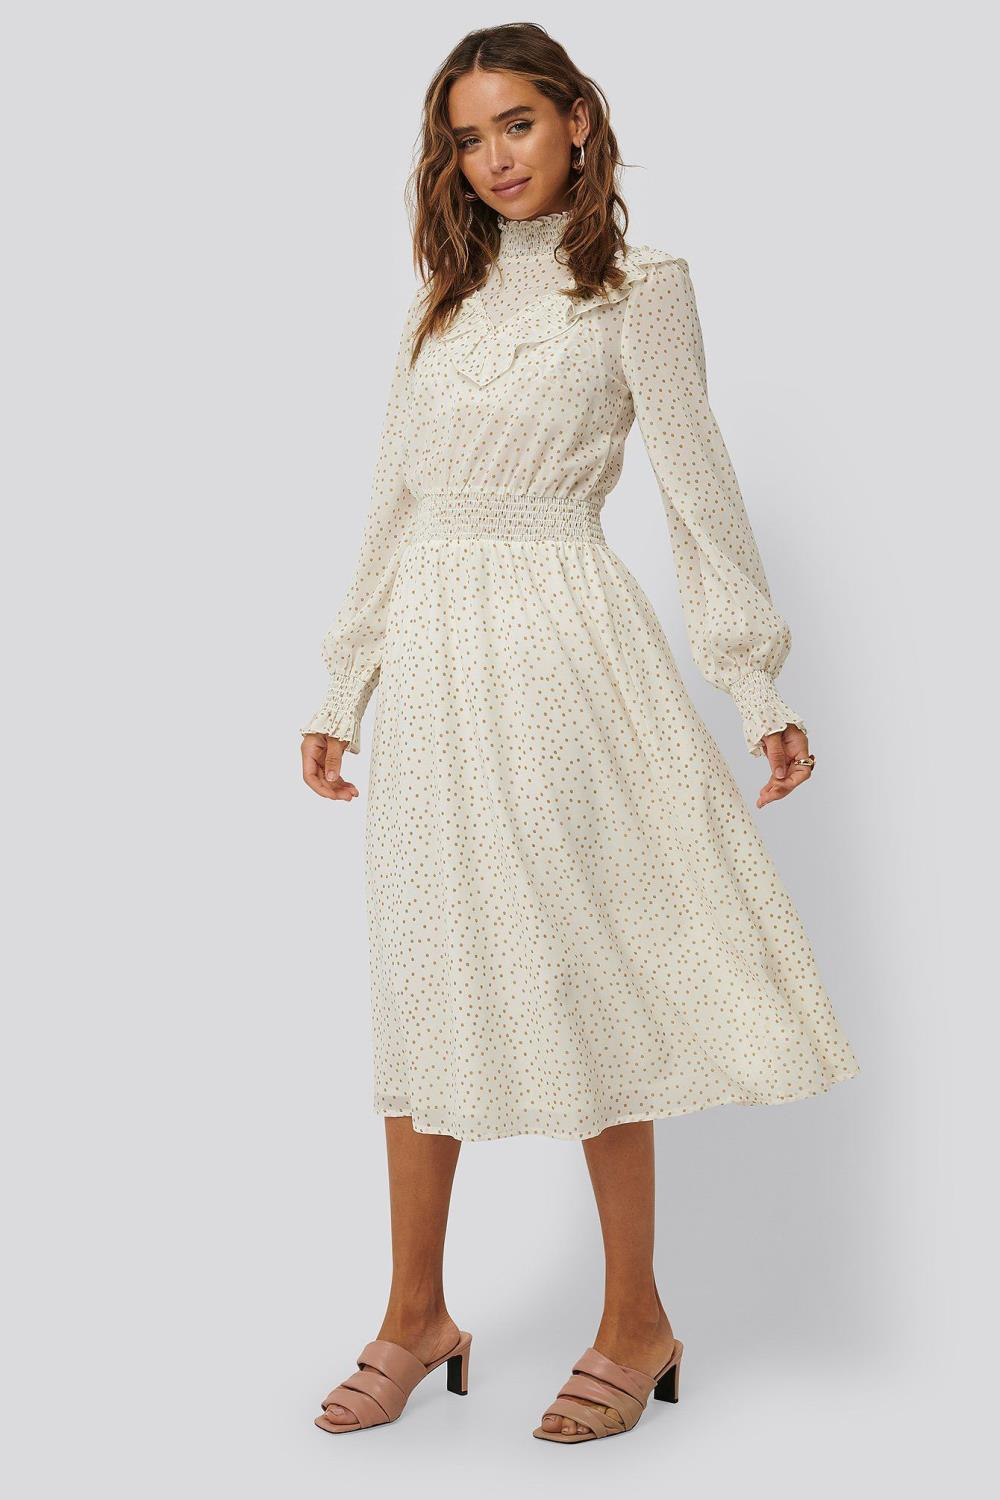 NA-KD Dotted fill detail dress, white/beige